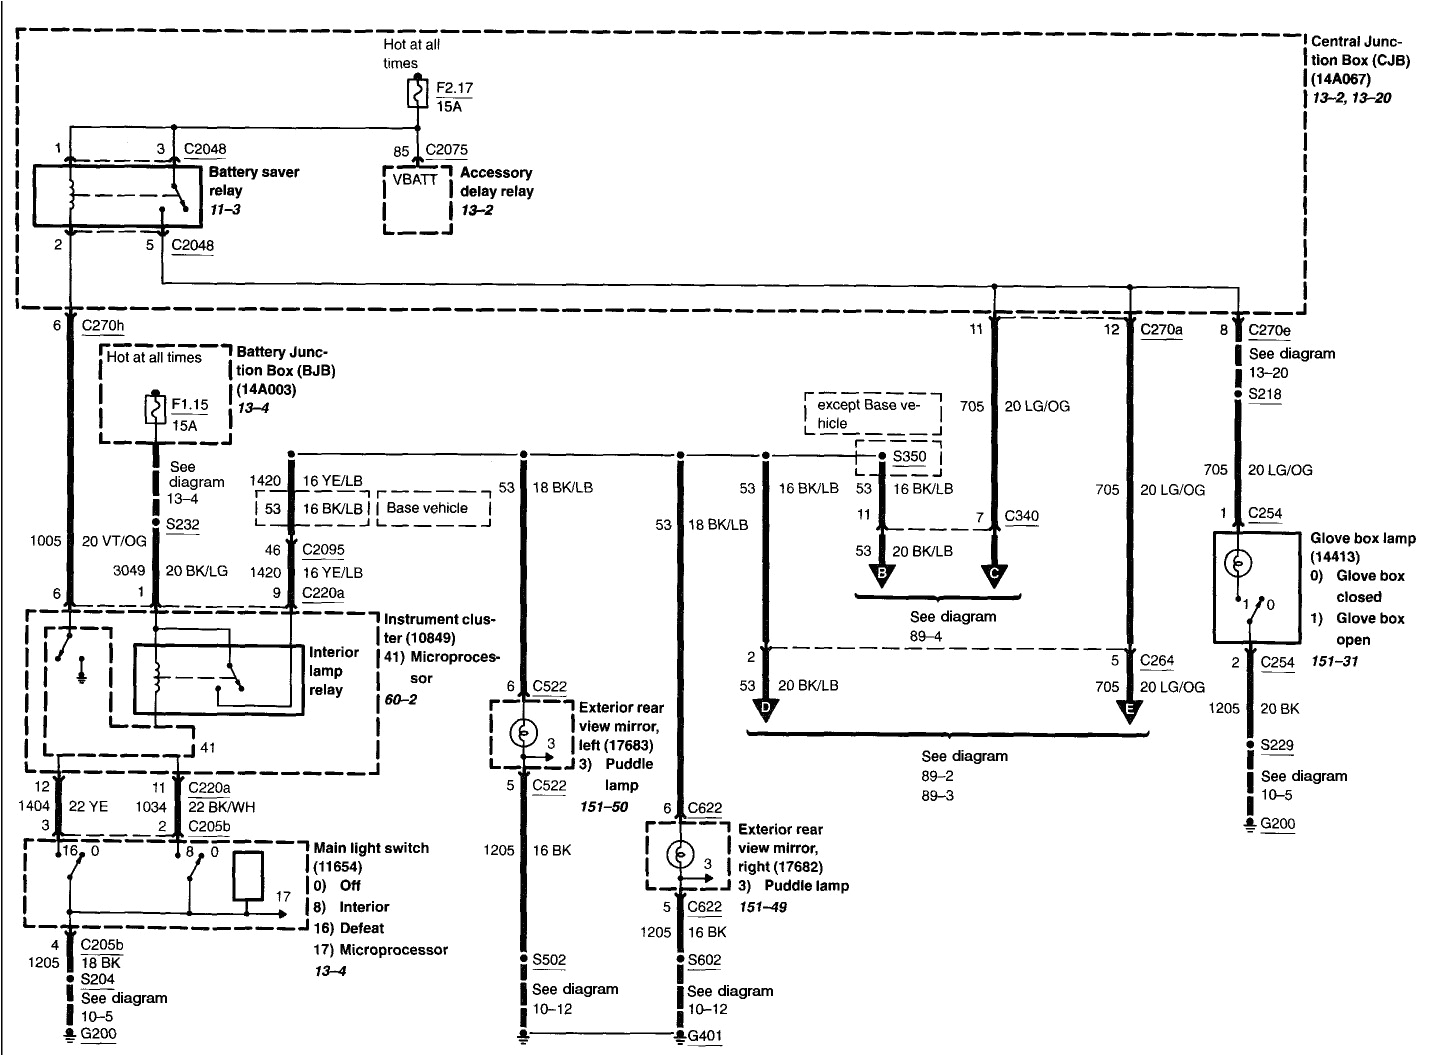 courtesy light wiring diagram best of 93 explorer interior light wiring circuit connection diagram